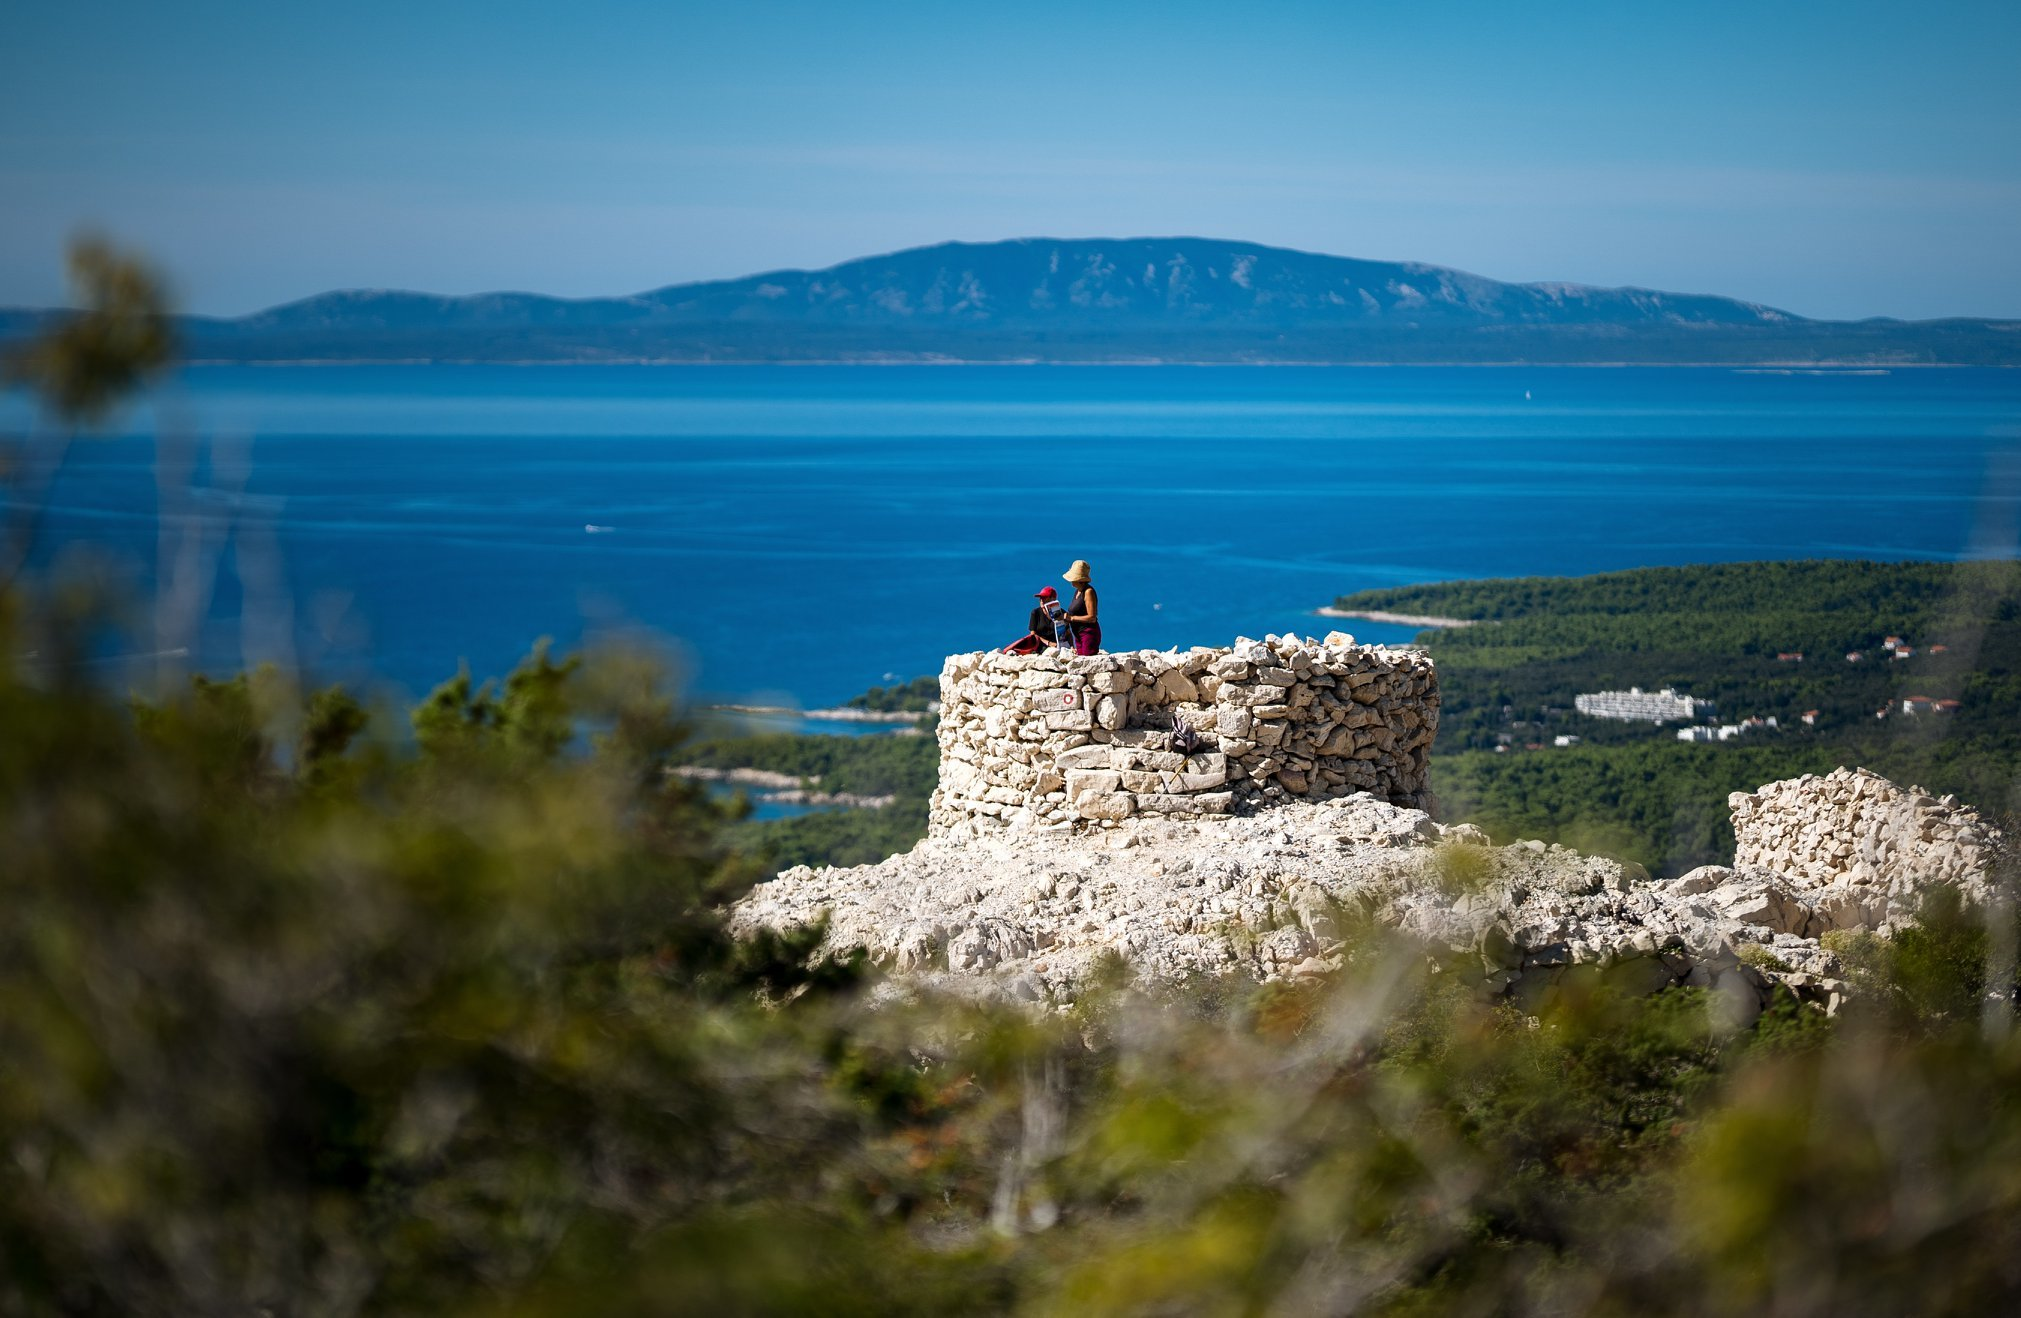 In pictures: Top 42 photos of Croatia's terrific nature trails